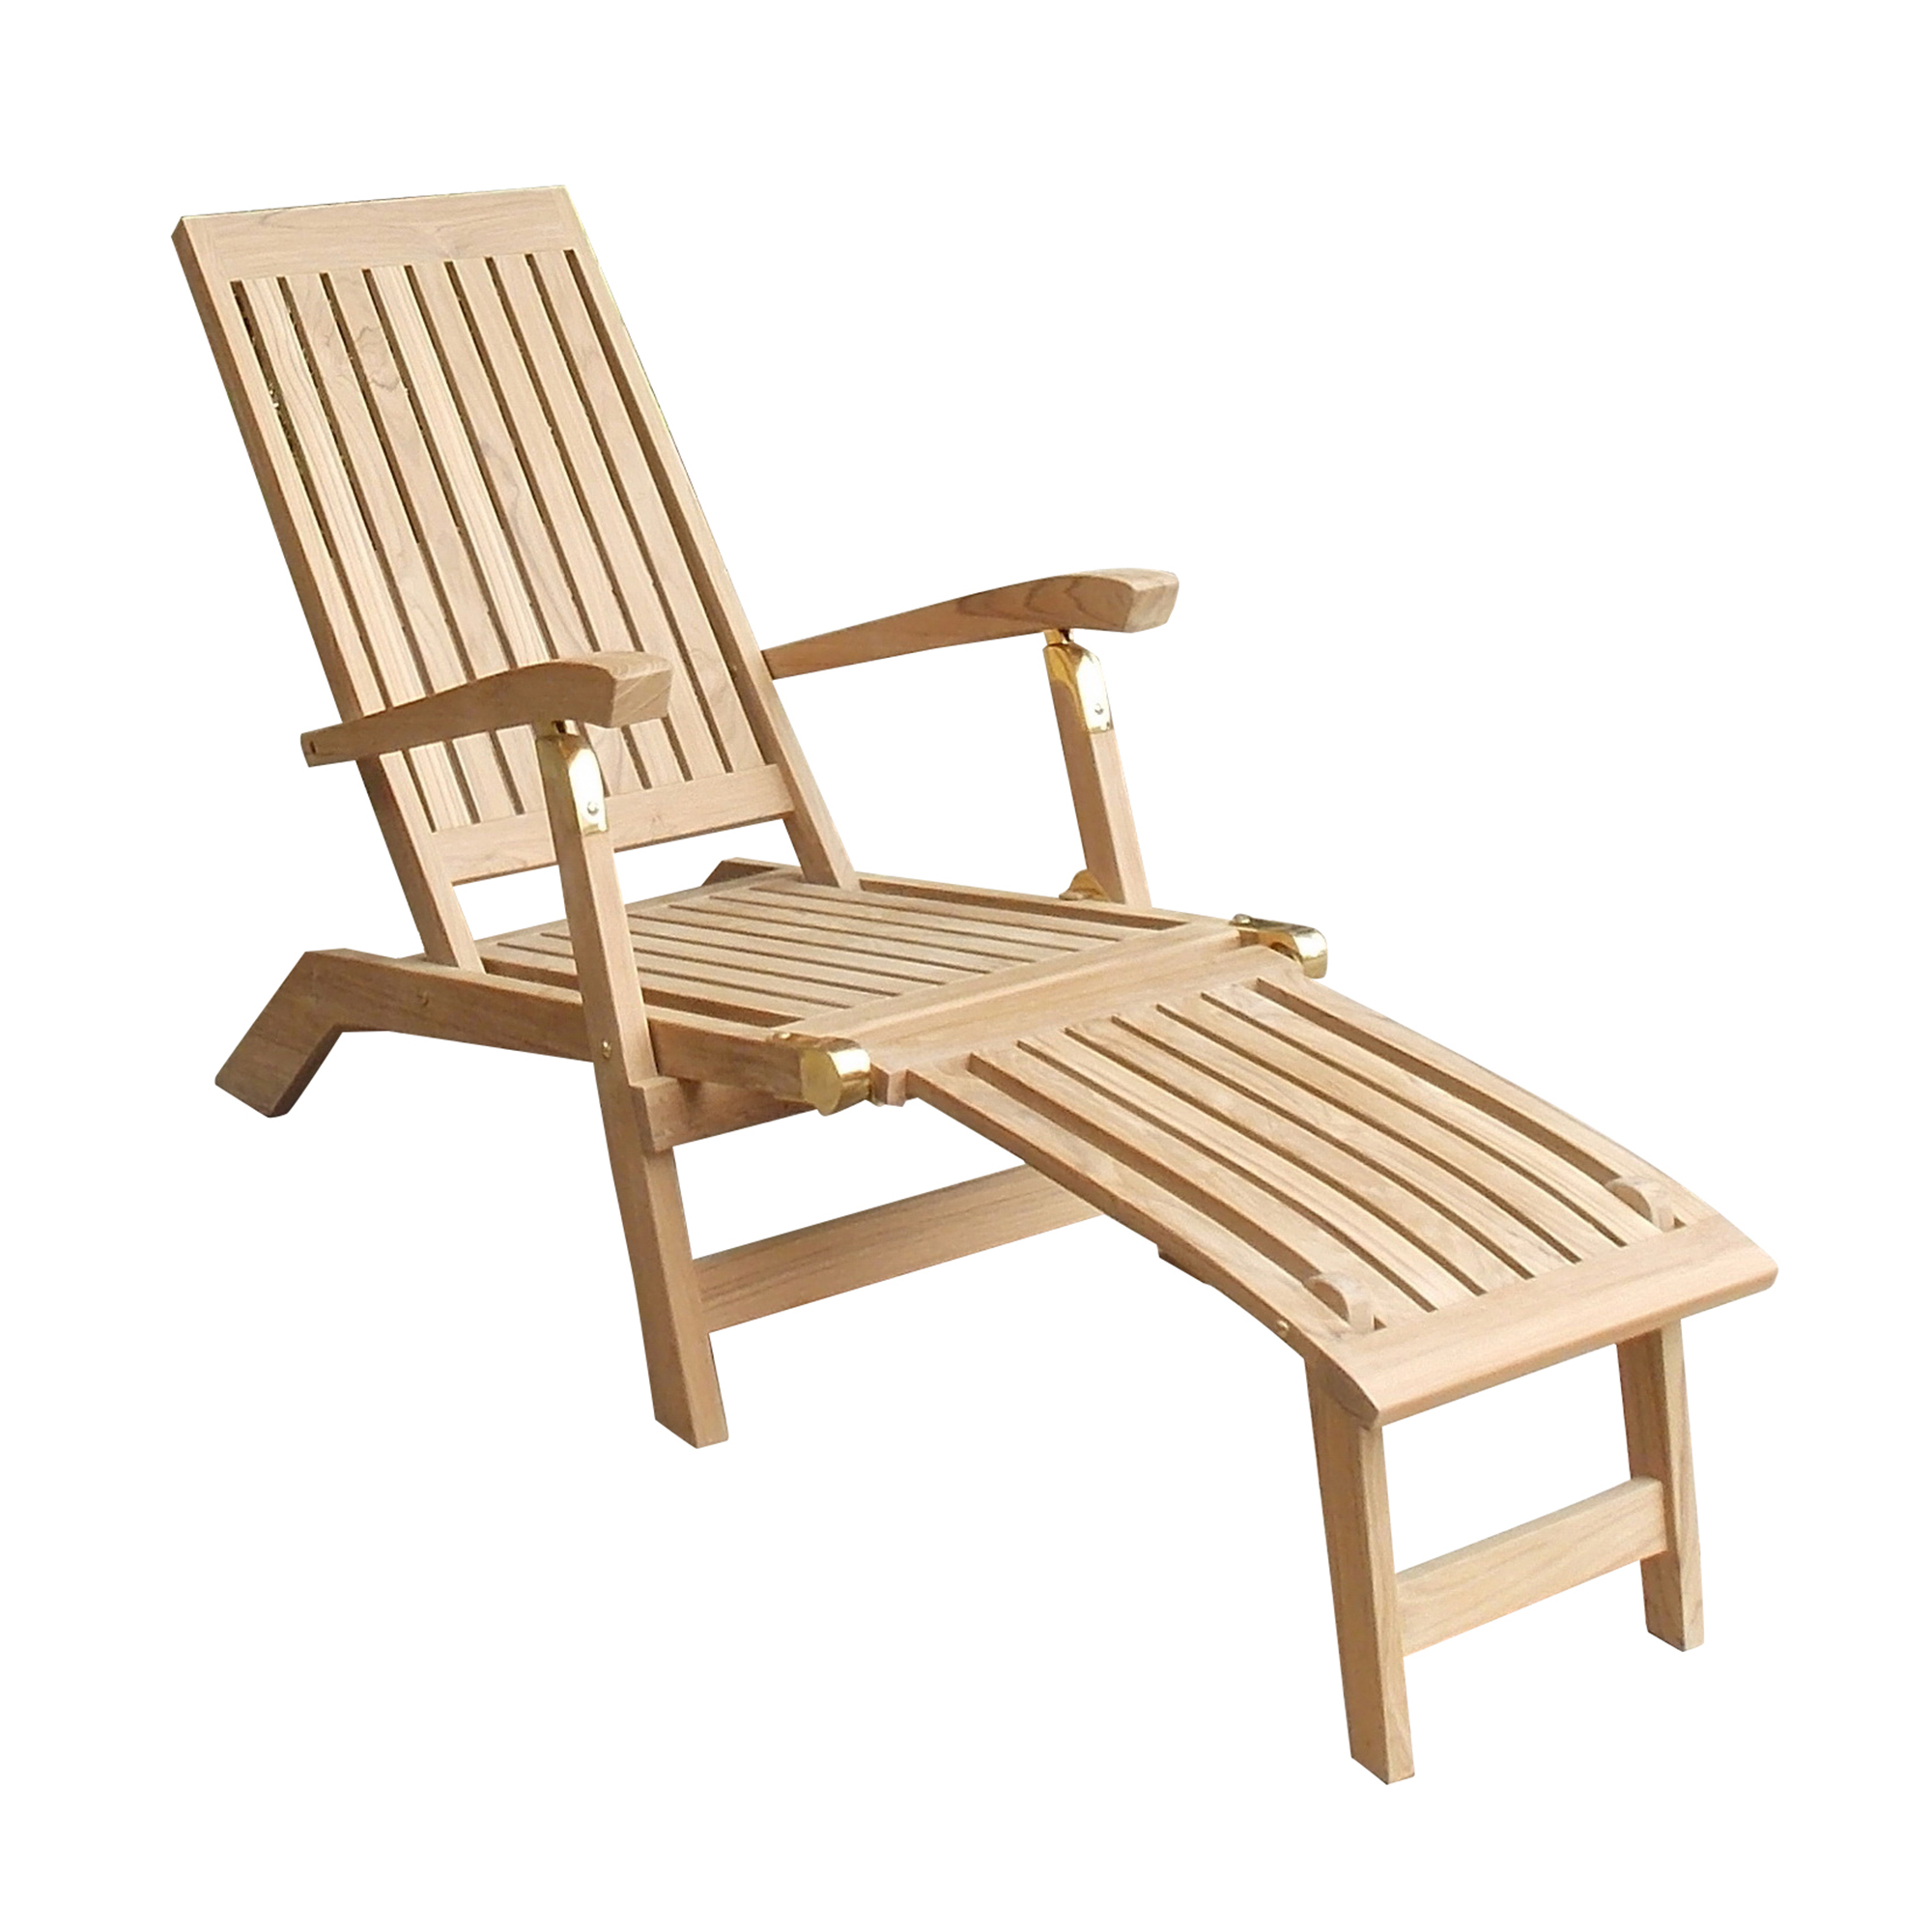 Niagara Teak Deck Chair :: NTCH10